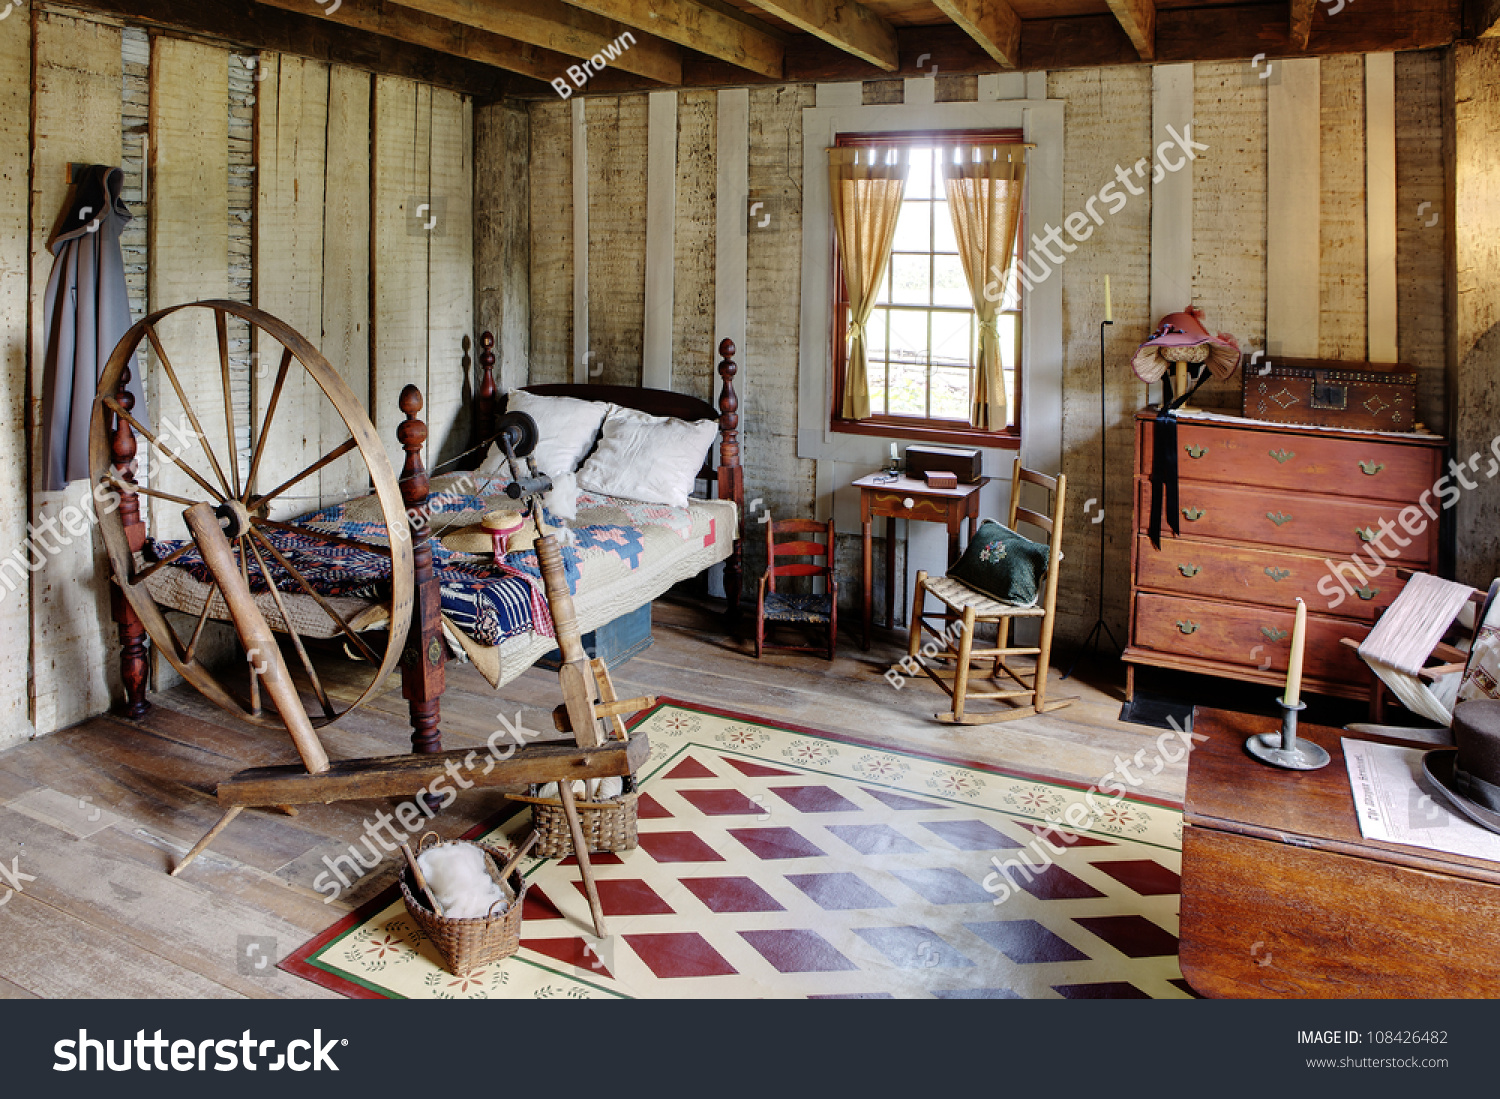 Bed room primitive colonial style reproduction stock photo for Reproduction homes